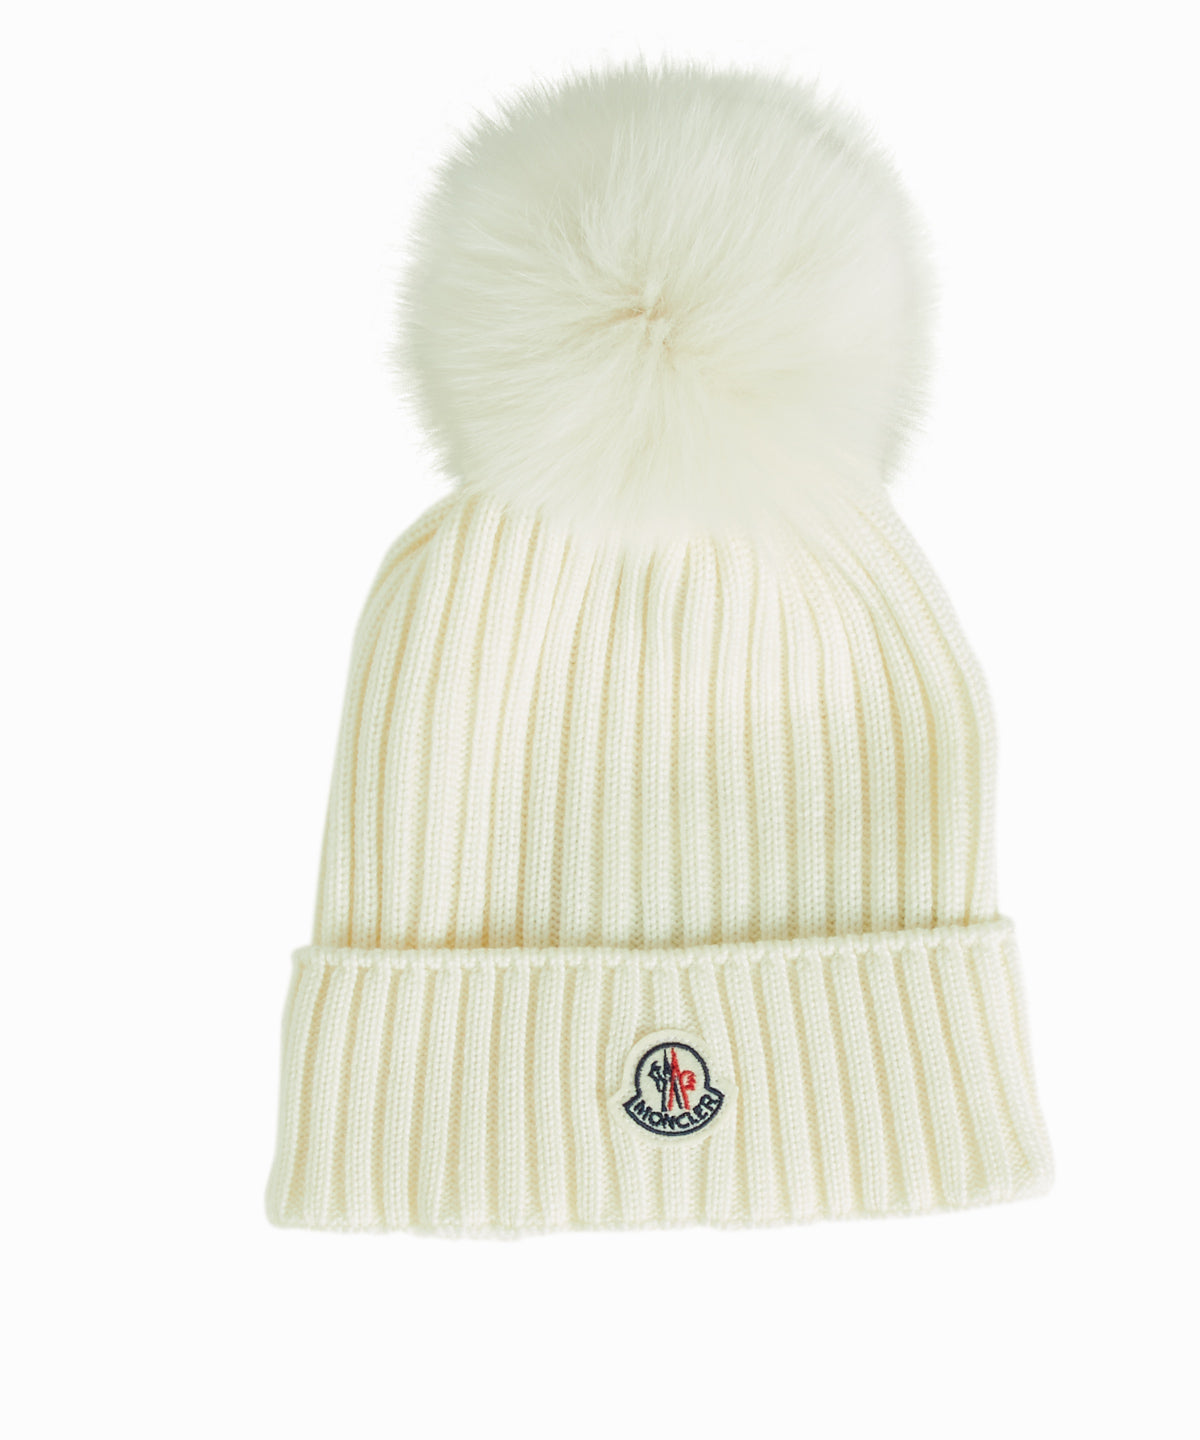 4c9acb89bfd Moncler Wool Hat With Fur Pom Pom